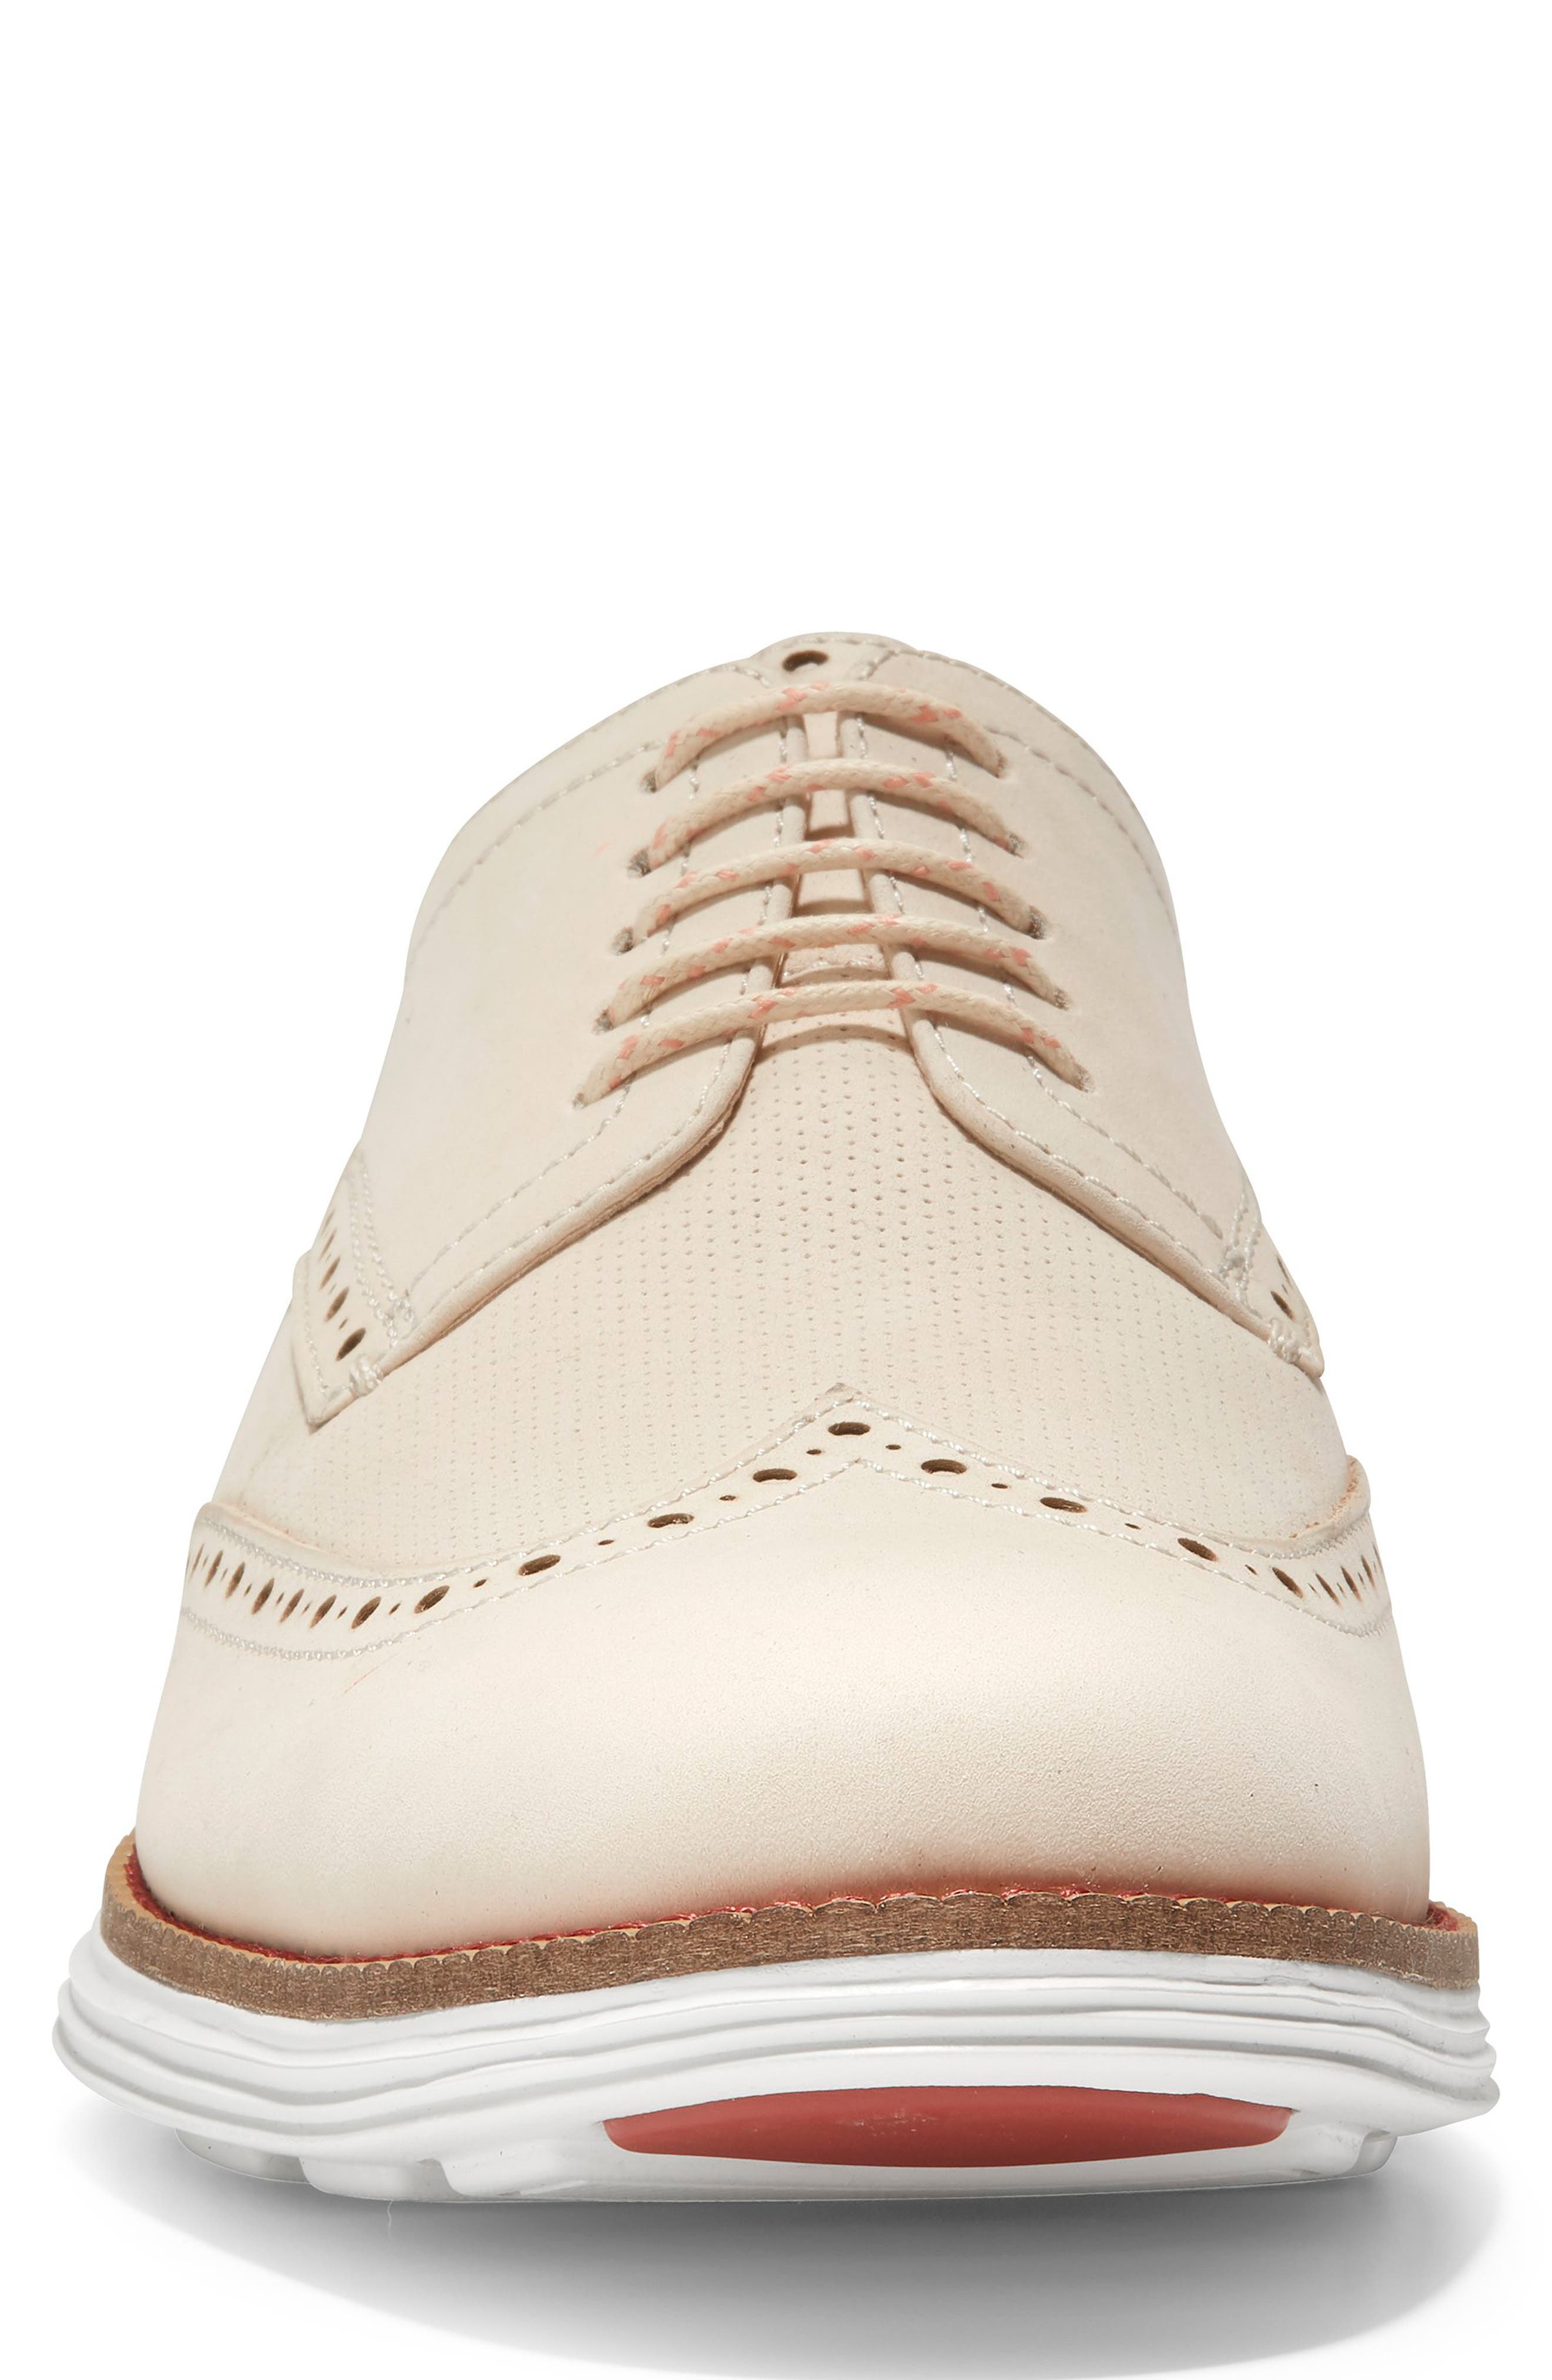 COLE HAAN, Original Grand Wingtip, Alternate thumbnail 4, color, SAND/ OPTIC WHITE NUBUCK